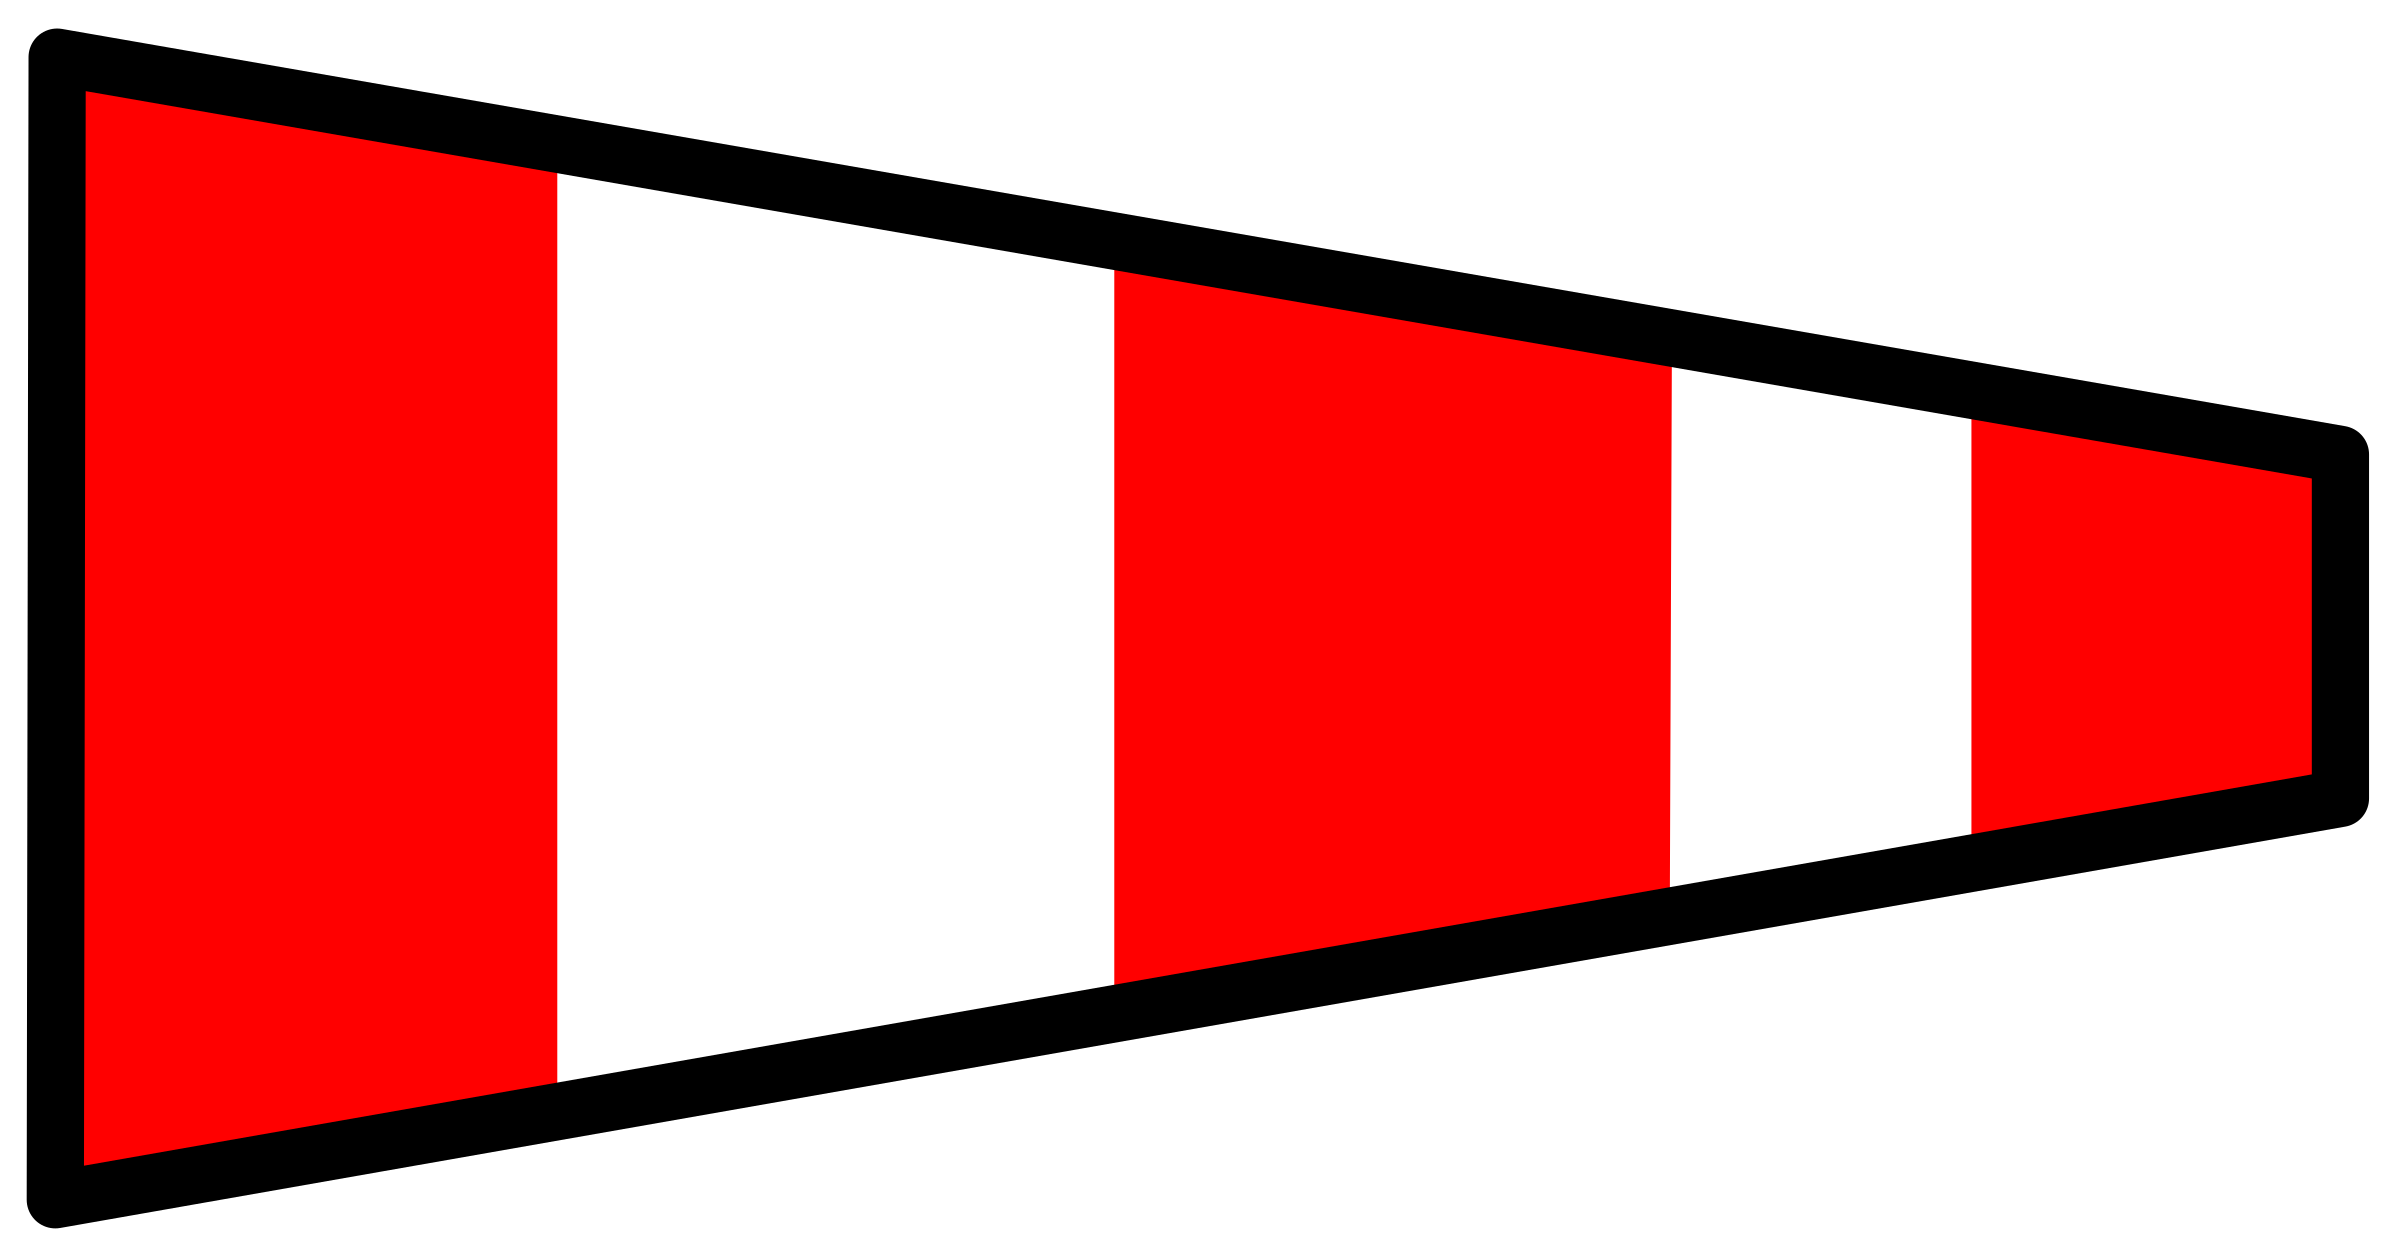 signalflag aff by Anonymous